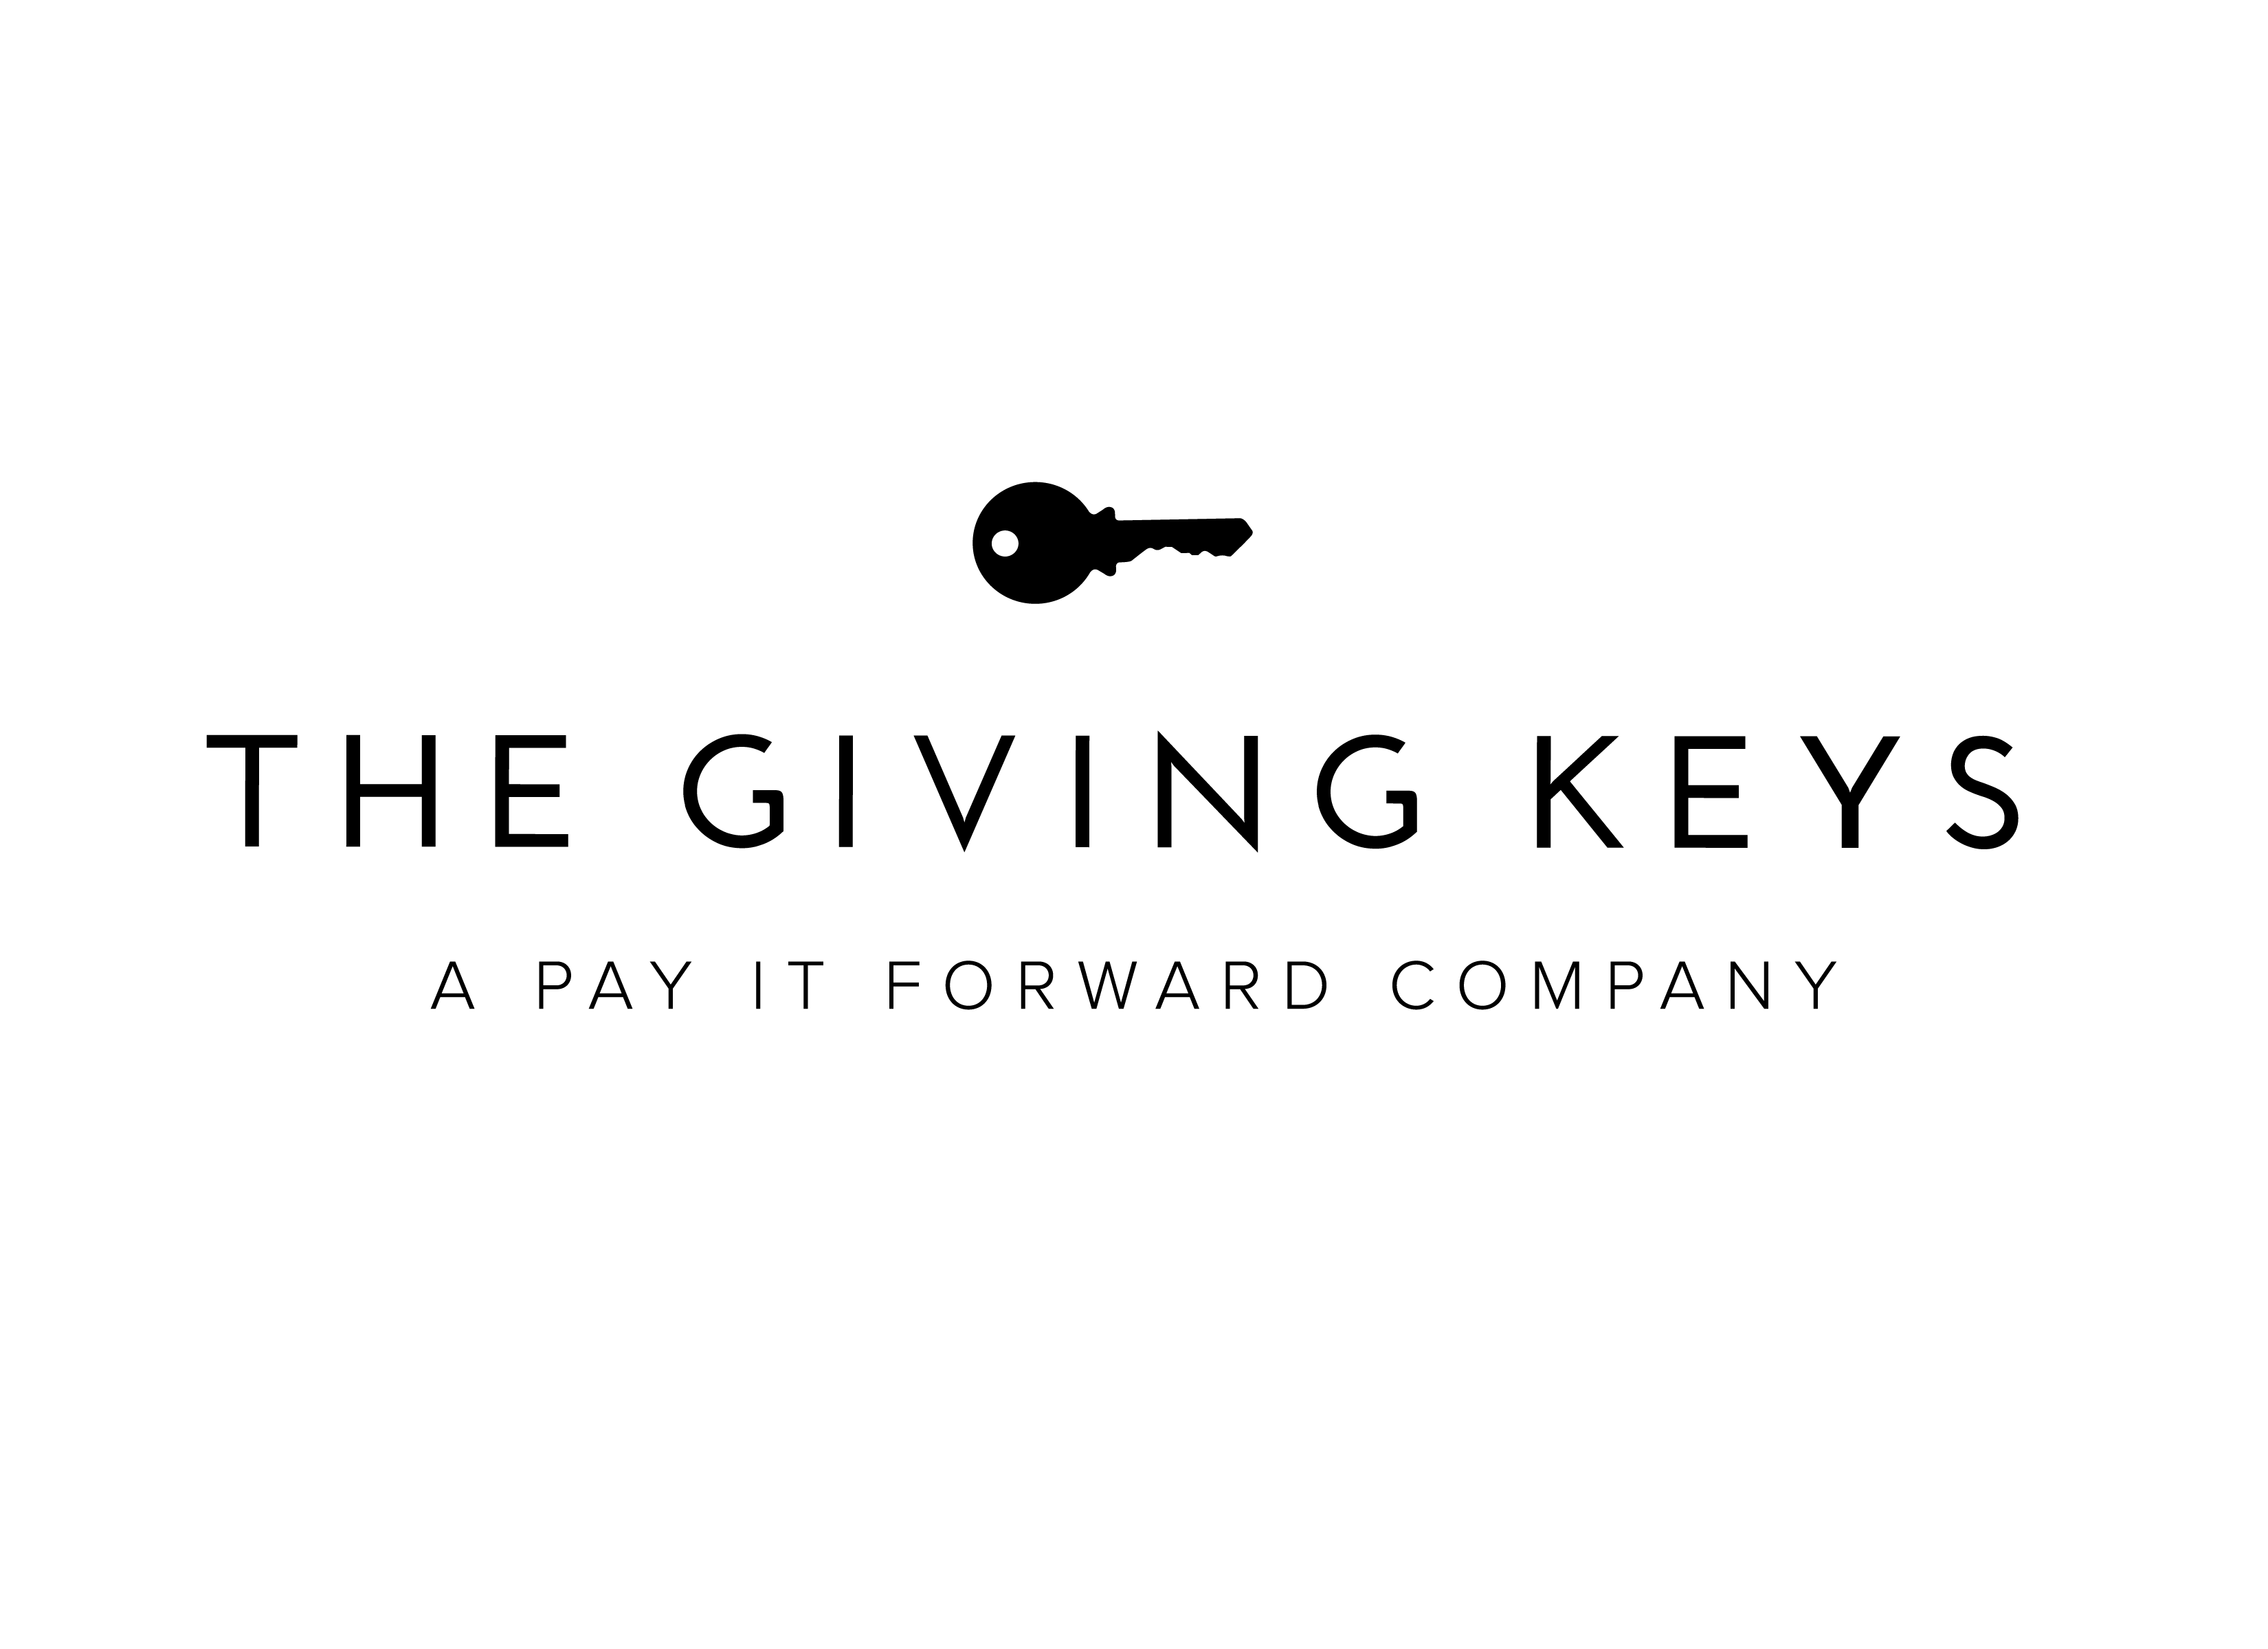 The Giving Keys logo